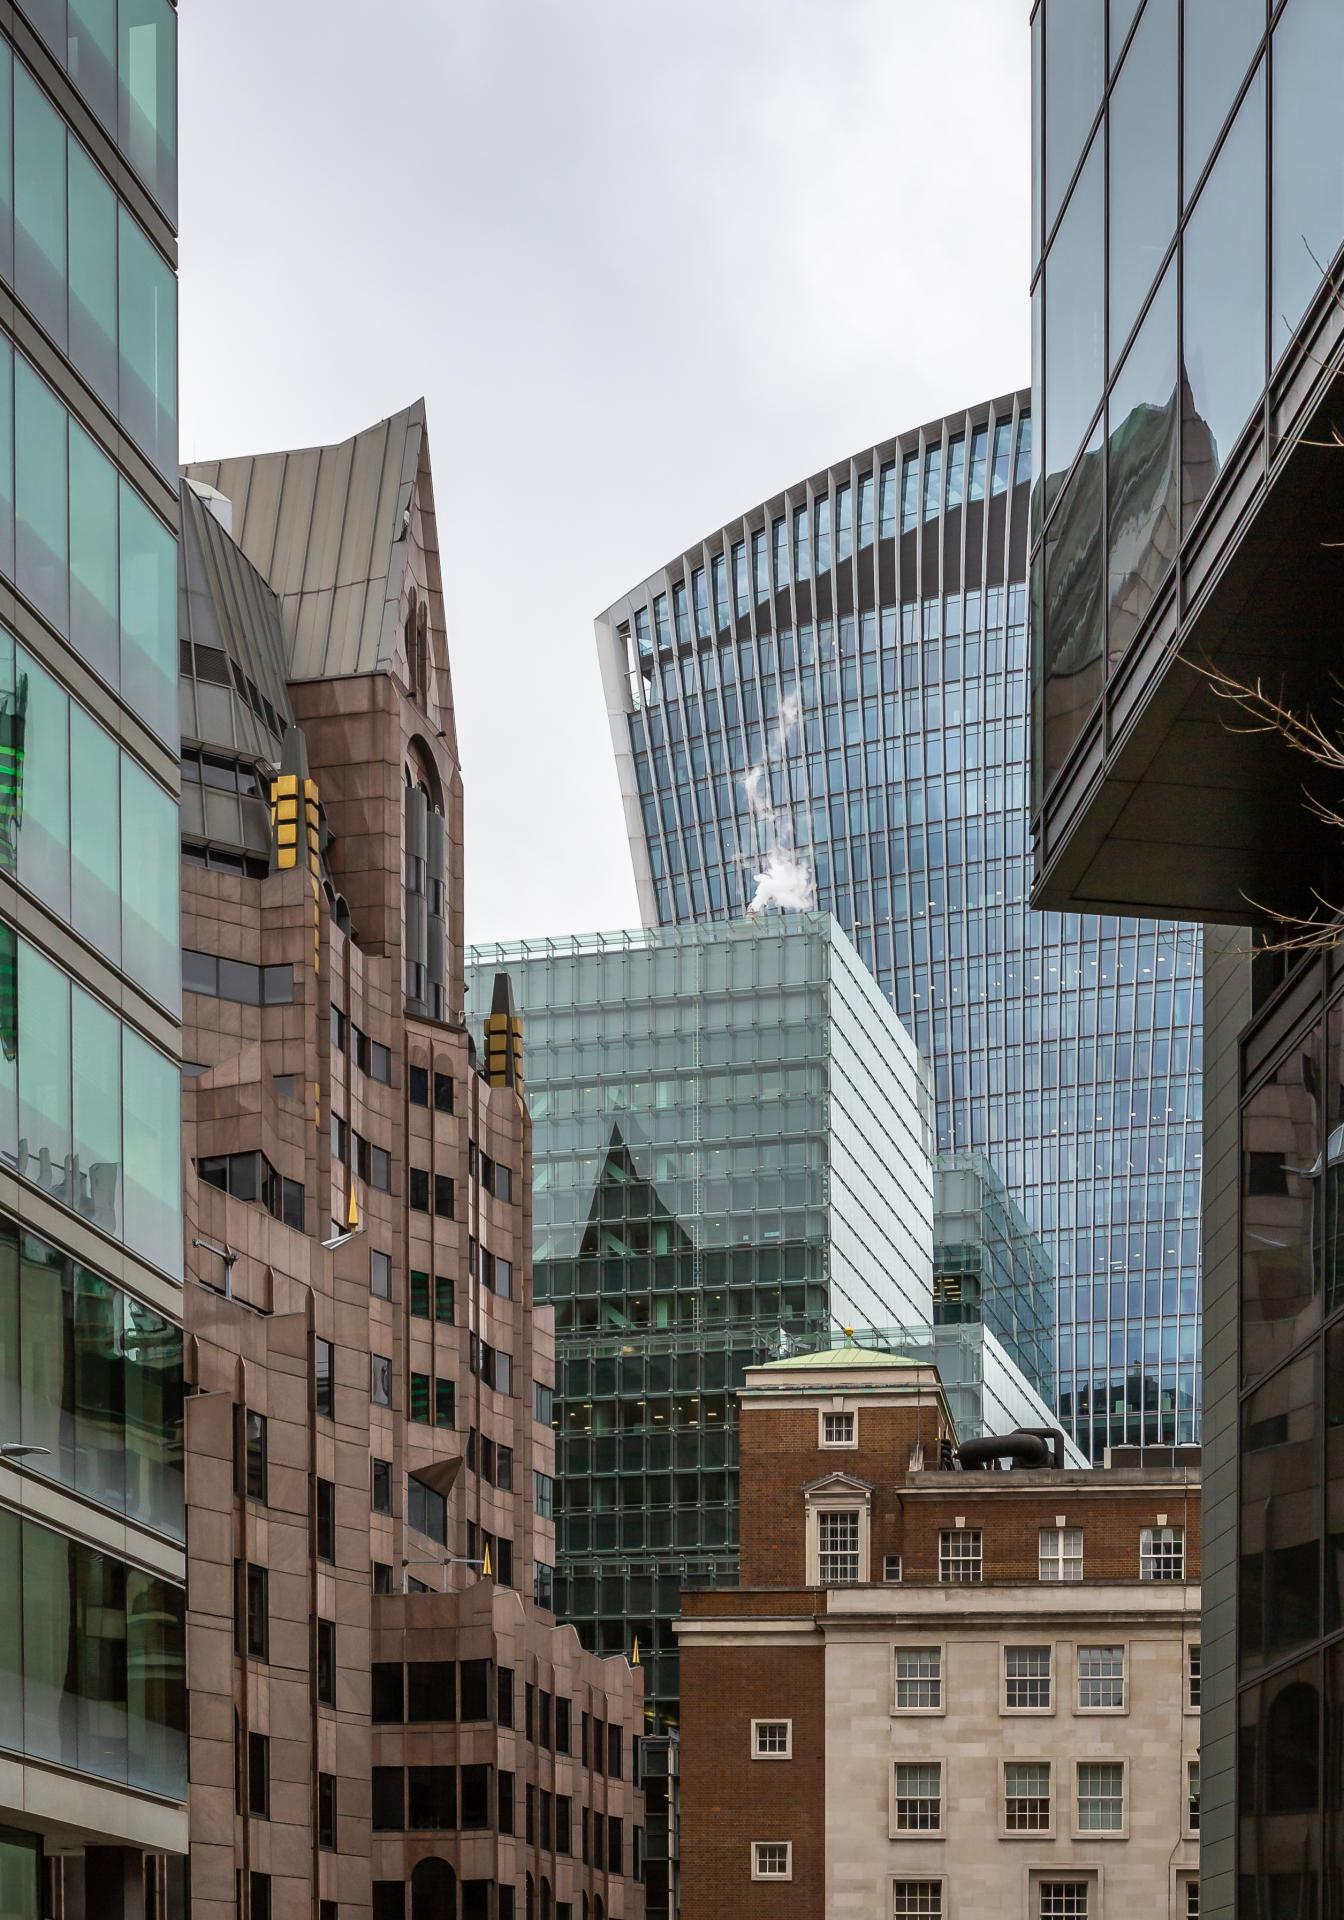 Walkie in background, mix of architectural styles in the foreground, taken outside Fenchurch Street, London,Liane Ryan Interior/Architectural Photographer